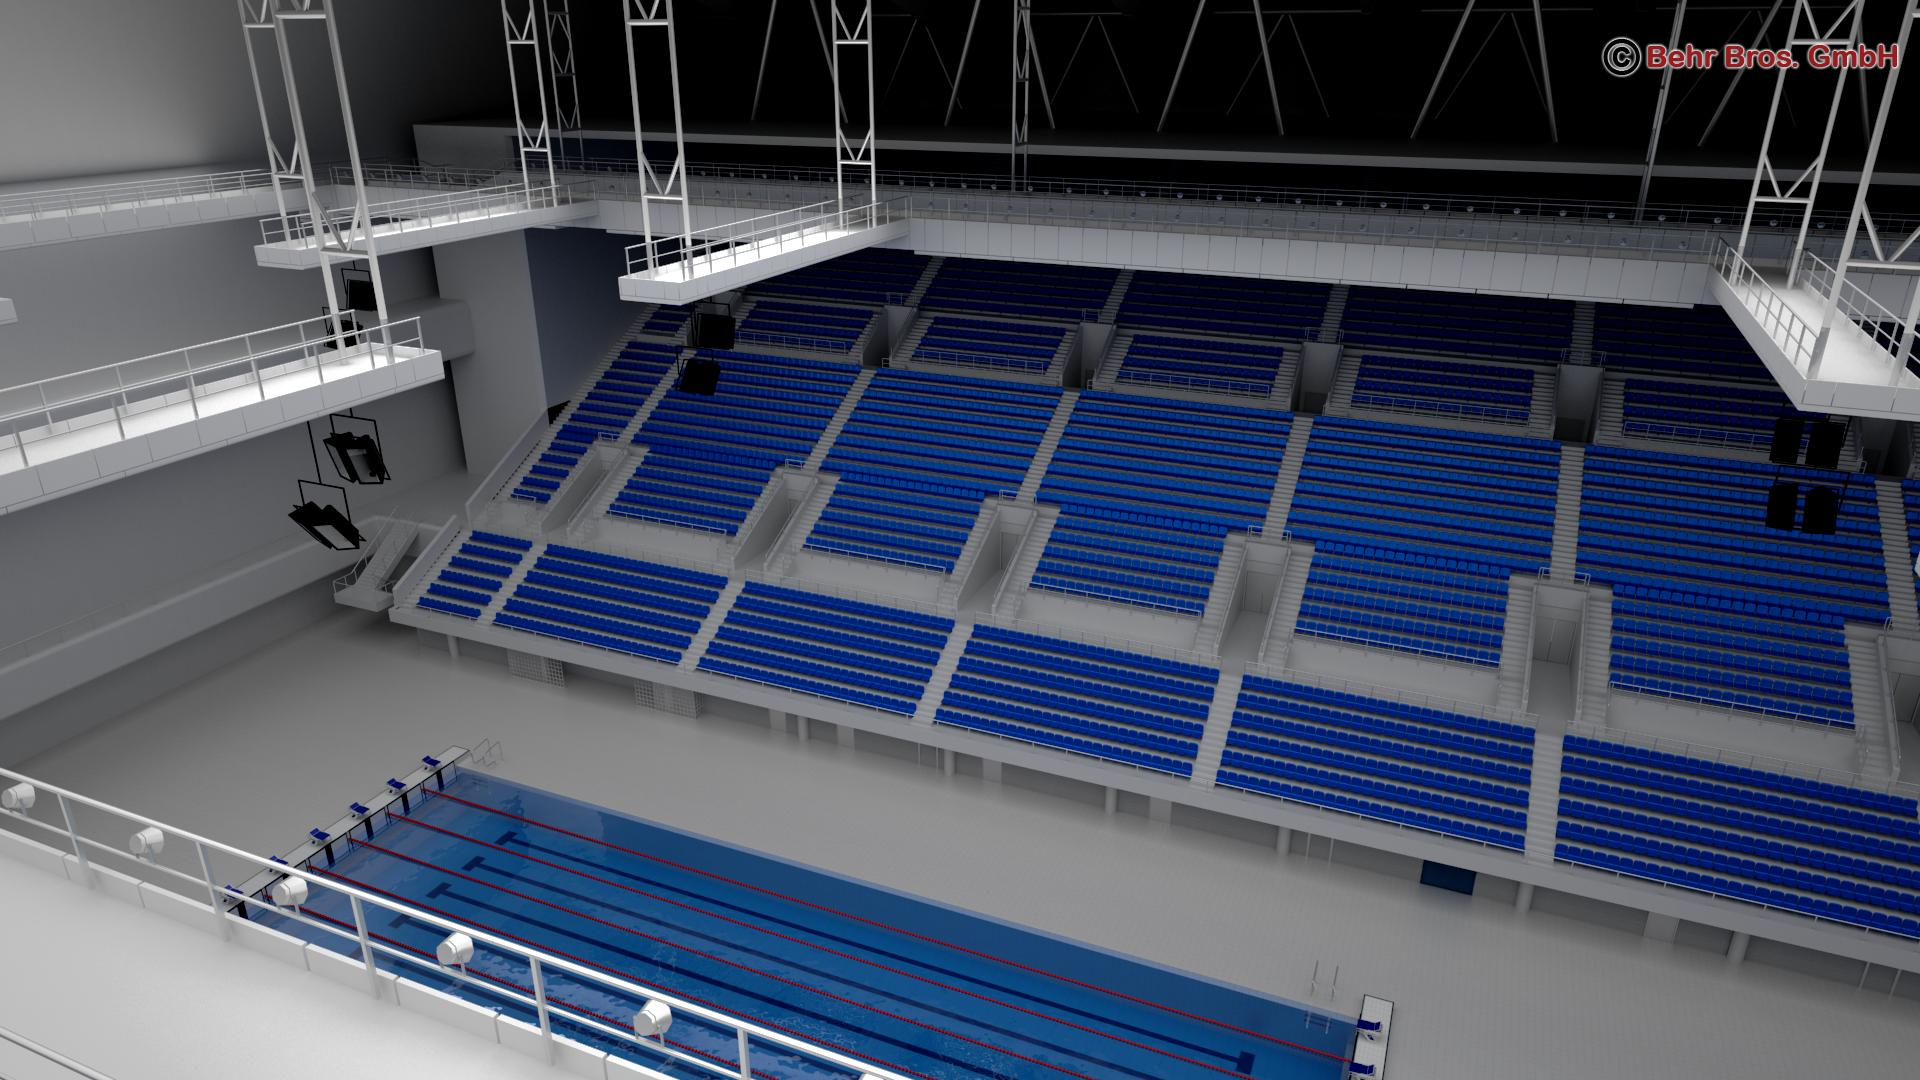 swim stadium 3d model 3ds max fbx c4d lwo ma mb obj 204438